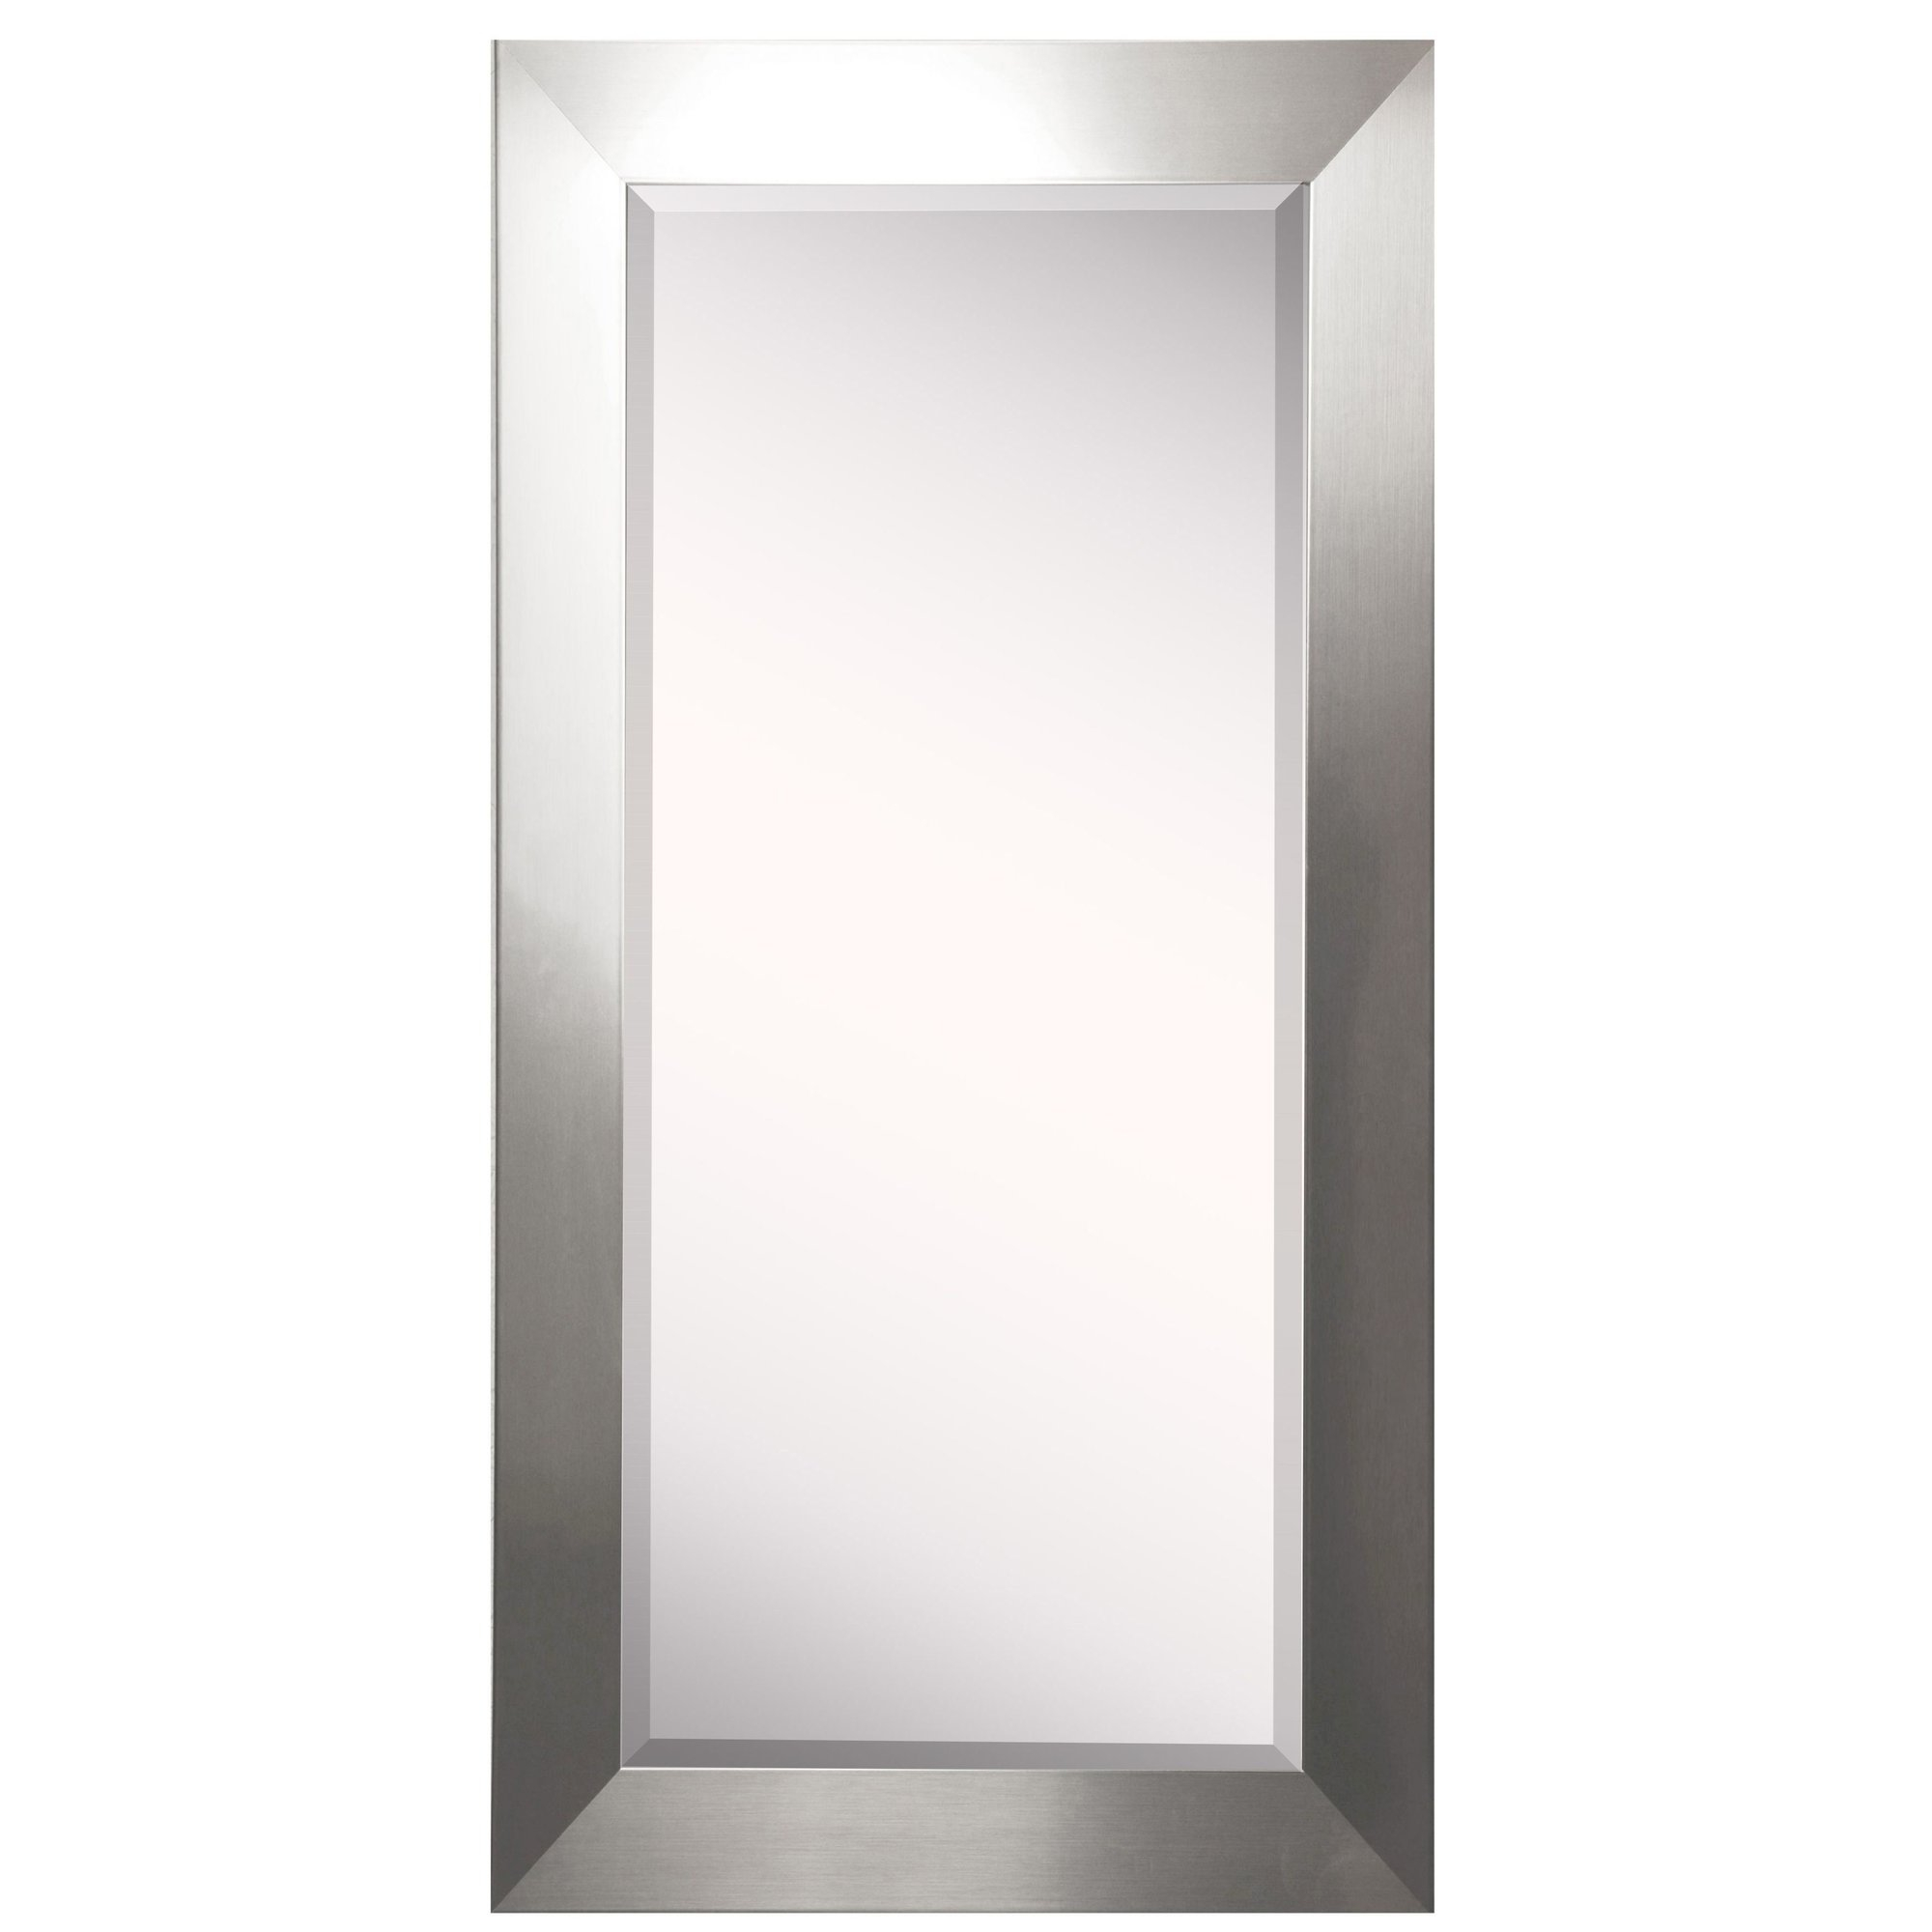 Modern Wall Mirrors Allmodern Pertaining To Contemporary Wall Mirrors (Image 12 of 15)